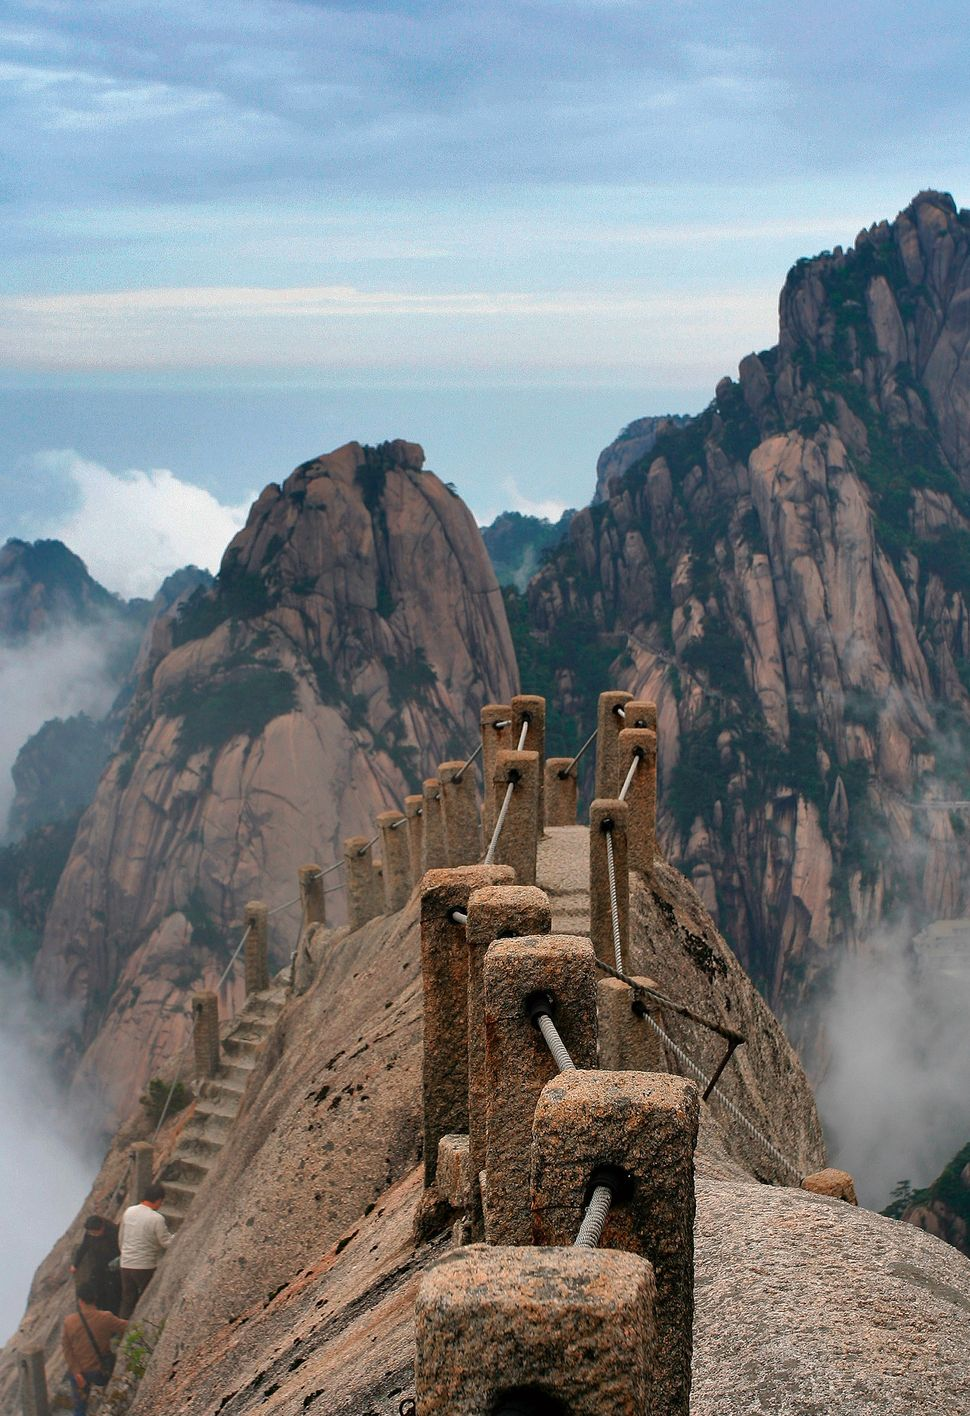 Breathtaking sky bridge on the peak of Huang Mountain, China.